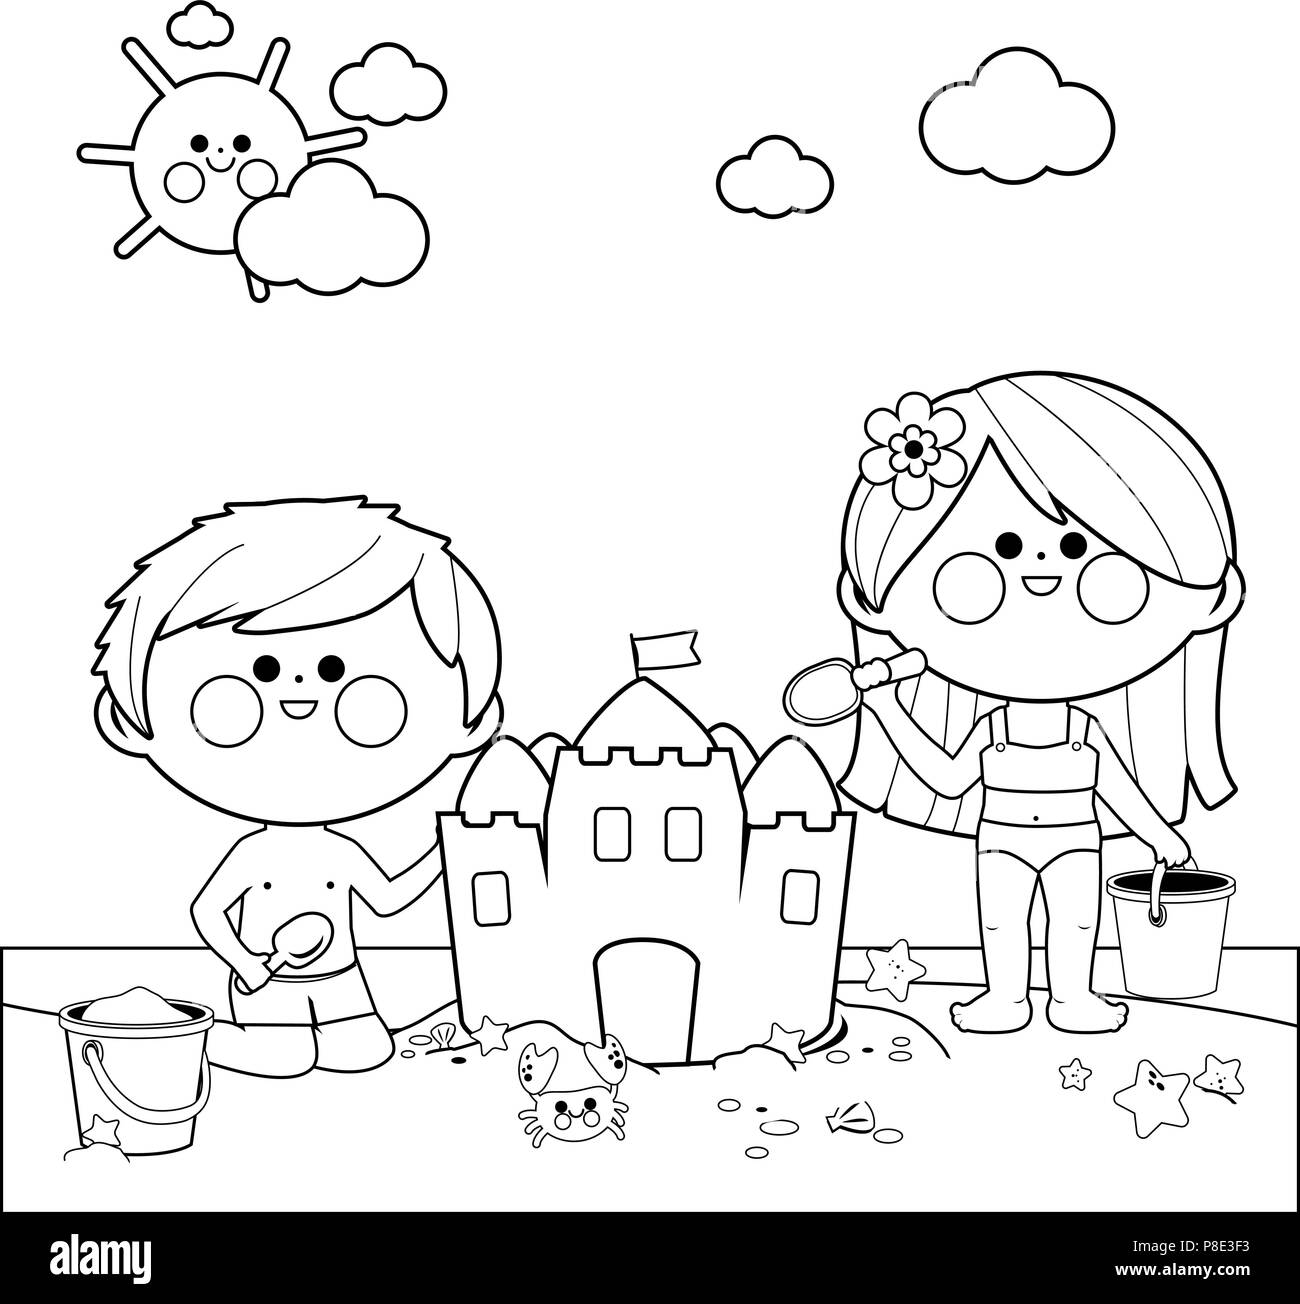 Children At The Beach Building A Sandcastle Black And White Coloring Book Page Stock Vector Image Art Alamy